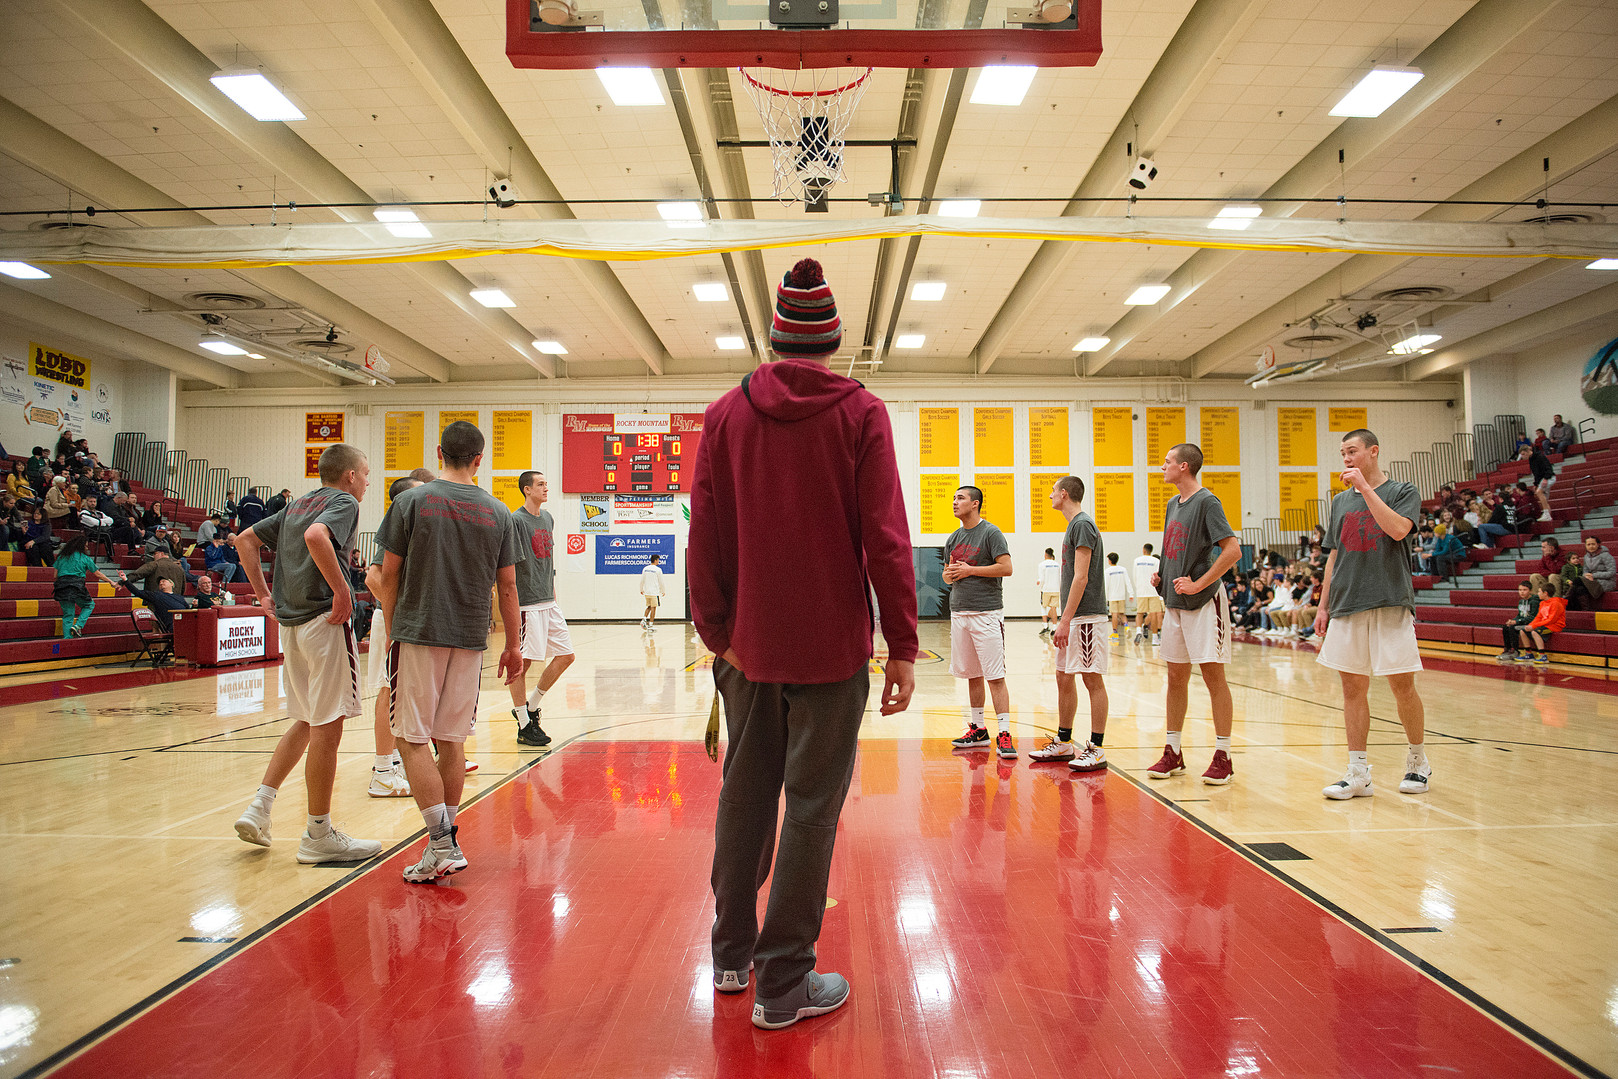 Carter Edgerley watches while the Lobos warm up before taking on Greeley West on Tuesday, January 8, 2019. AUSTIN HUMPHREYS/THE COLORADOAN